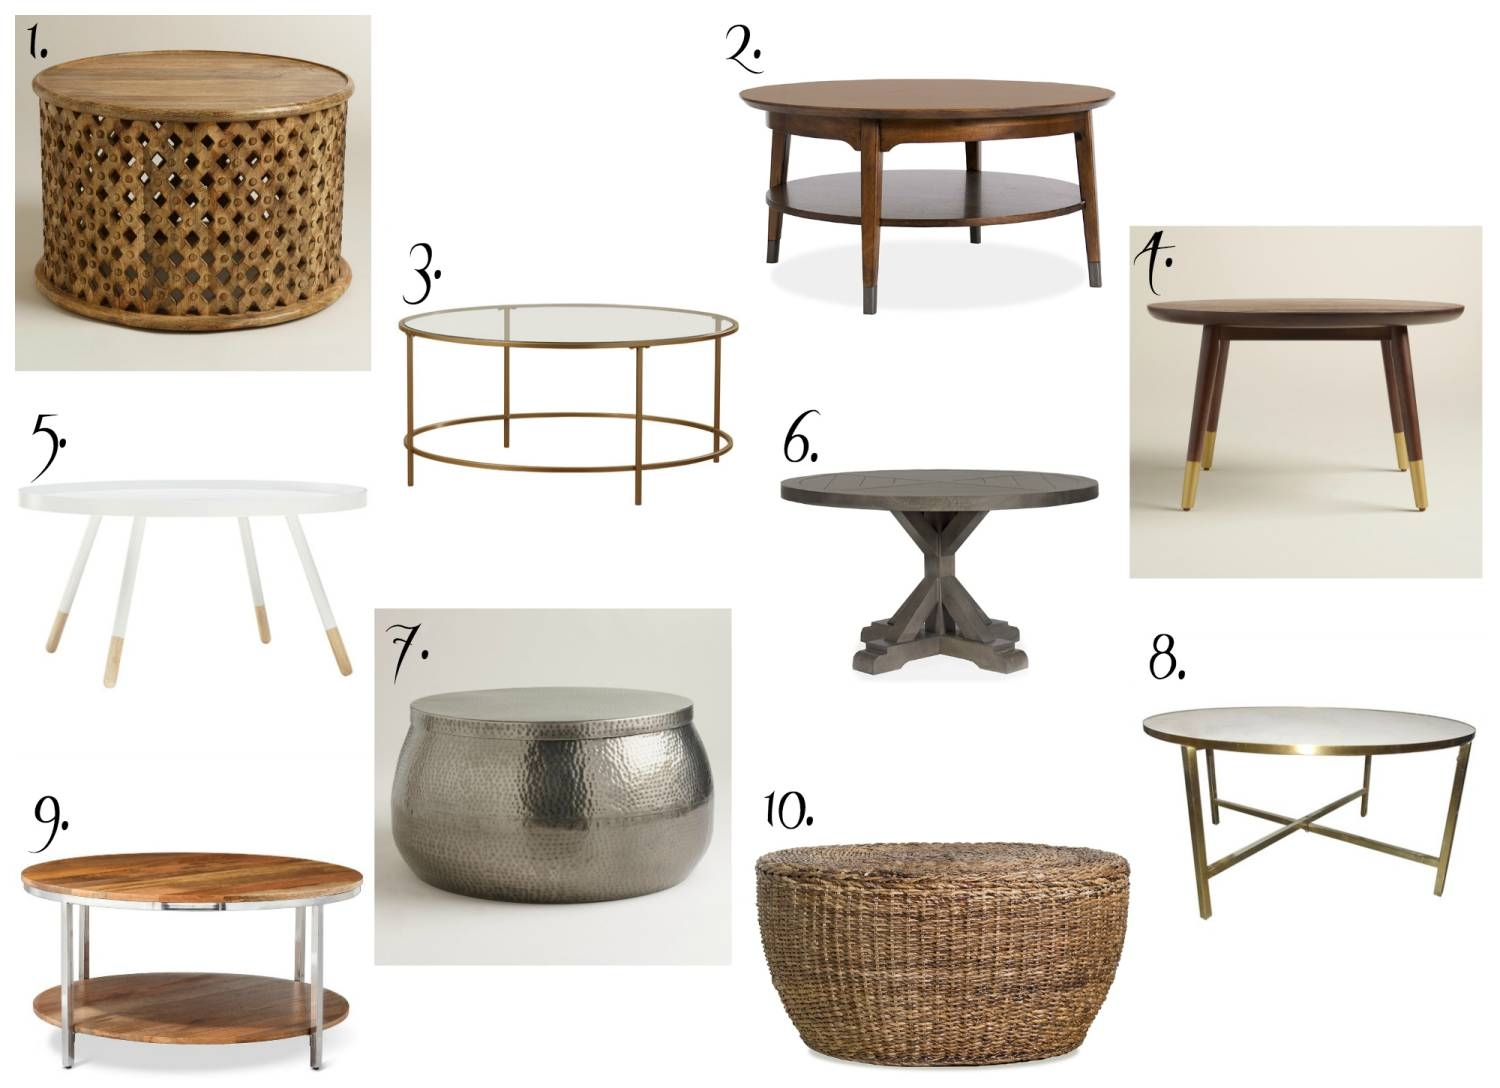 Affordable Round Coffee Tables - The Chronicles Of Home throughout Circular Coffee Tables (Image 3 of 30)